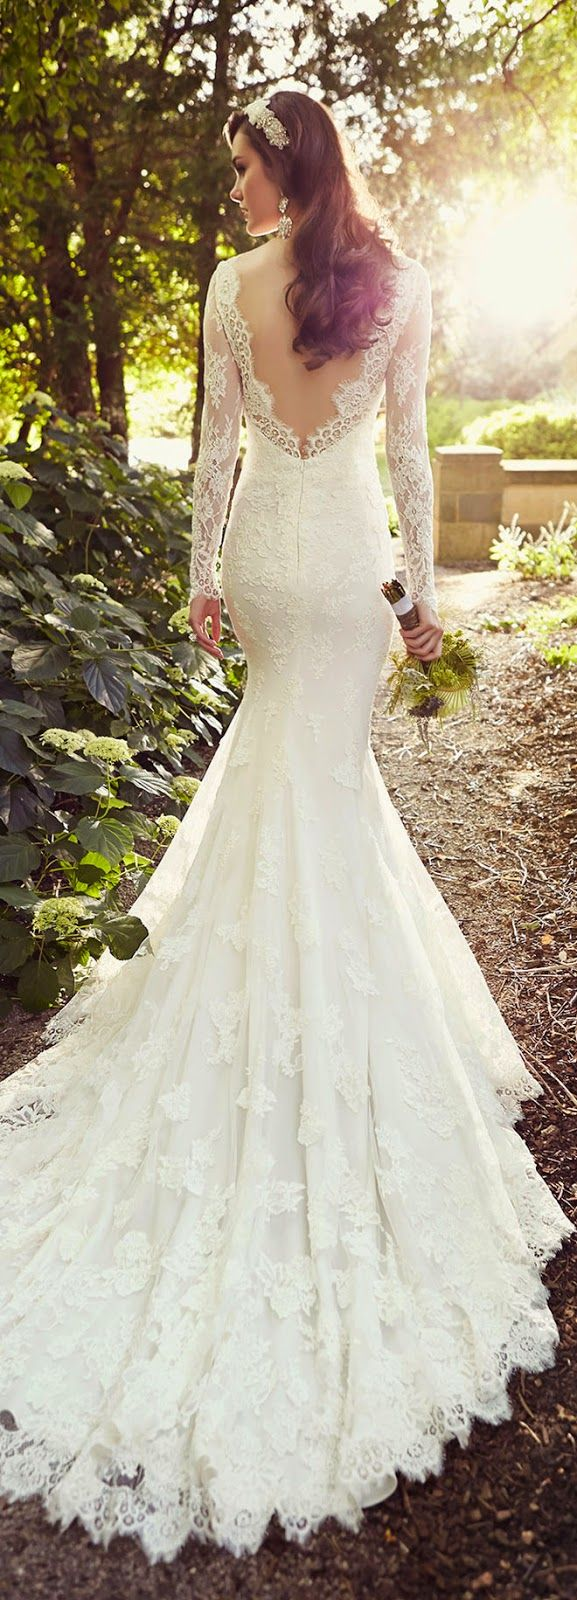 Popular vintage wedding dresses ideas for fall wedding vintage lace wedding dress for fall country wedding ombrellifo Image collections